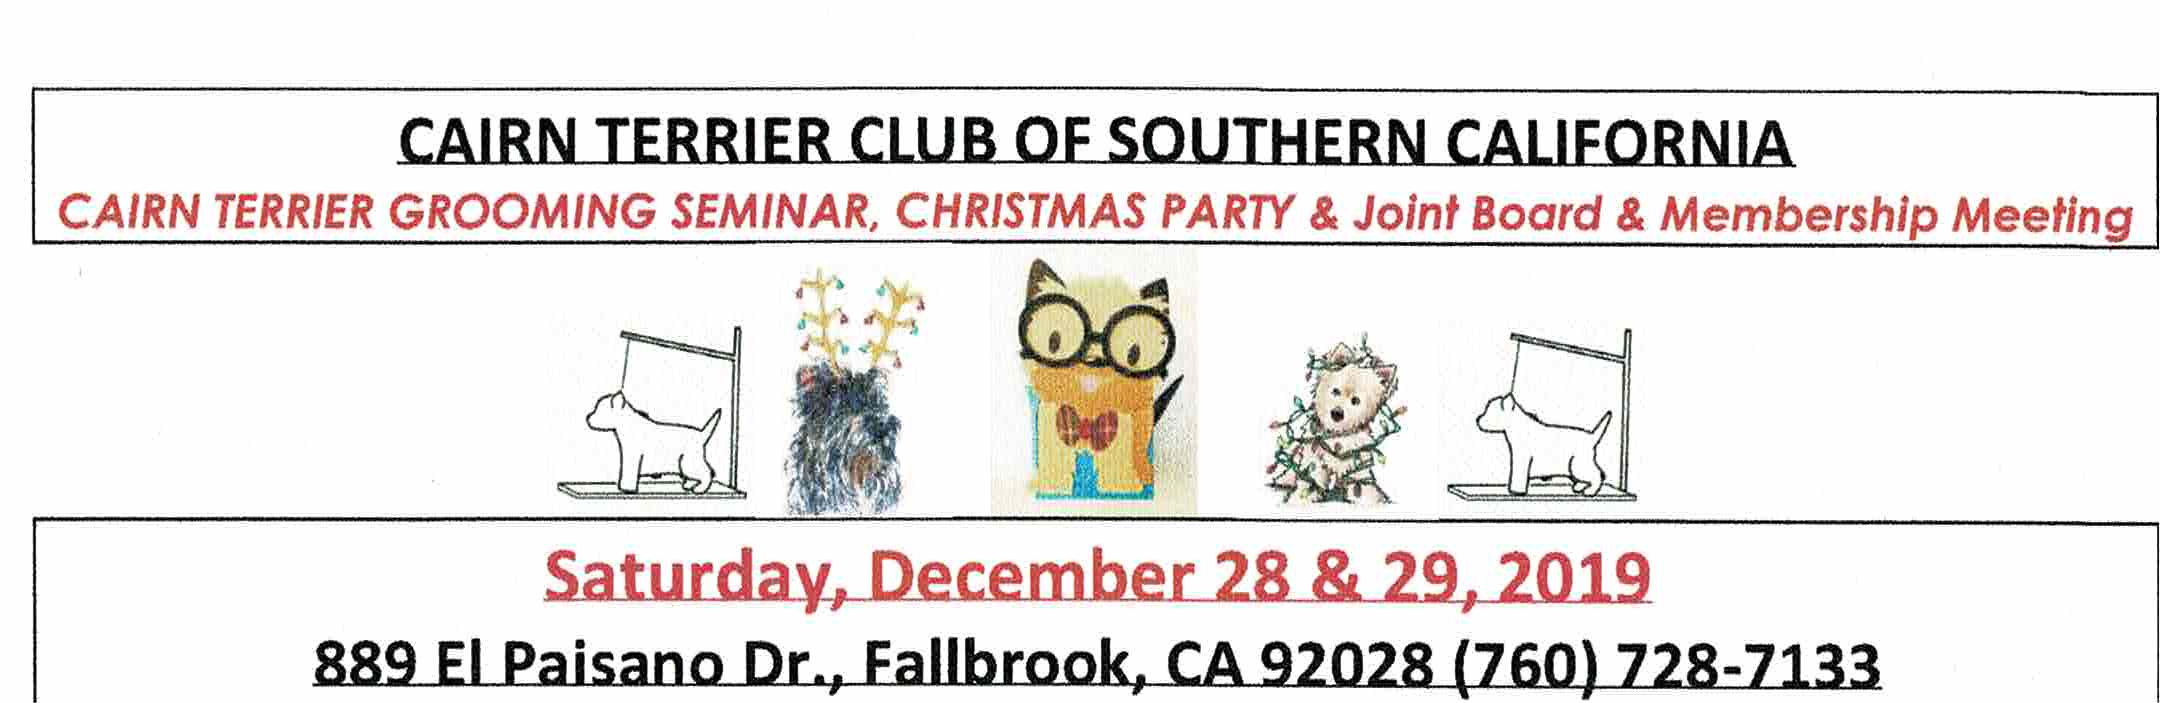 UPDATE – CTCSC Grooming Seminar, Christmas Party  & CTCSC Joint Board & Membership Meeting